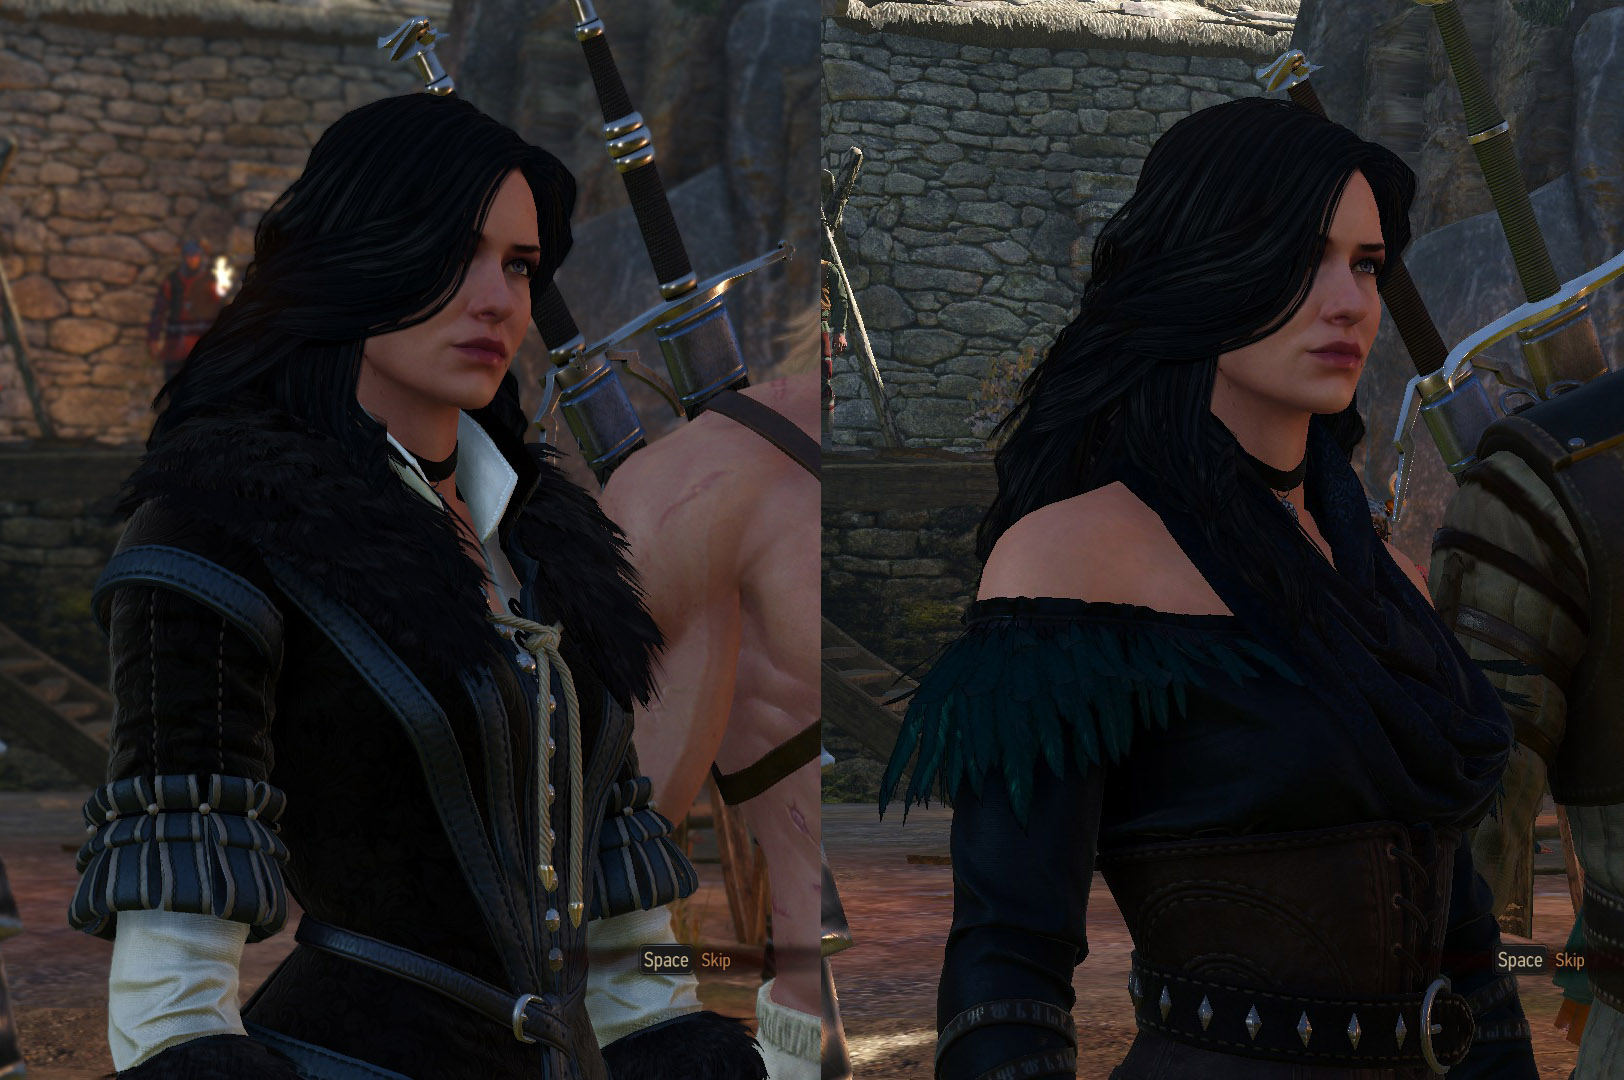 The Witcher 3 Outfits: Alternative Kostüme für Triss und Yennefer